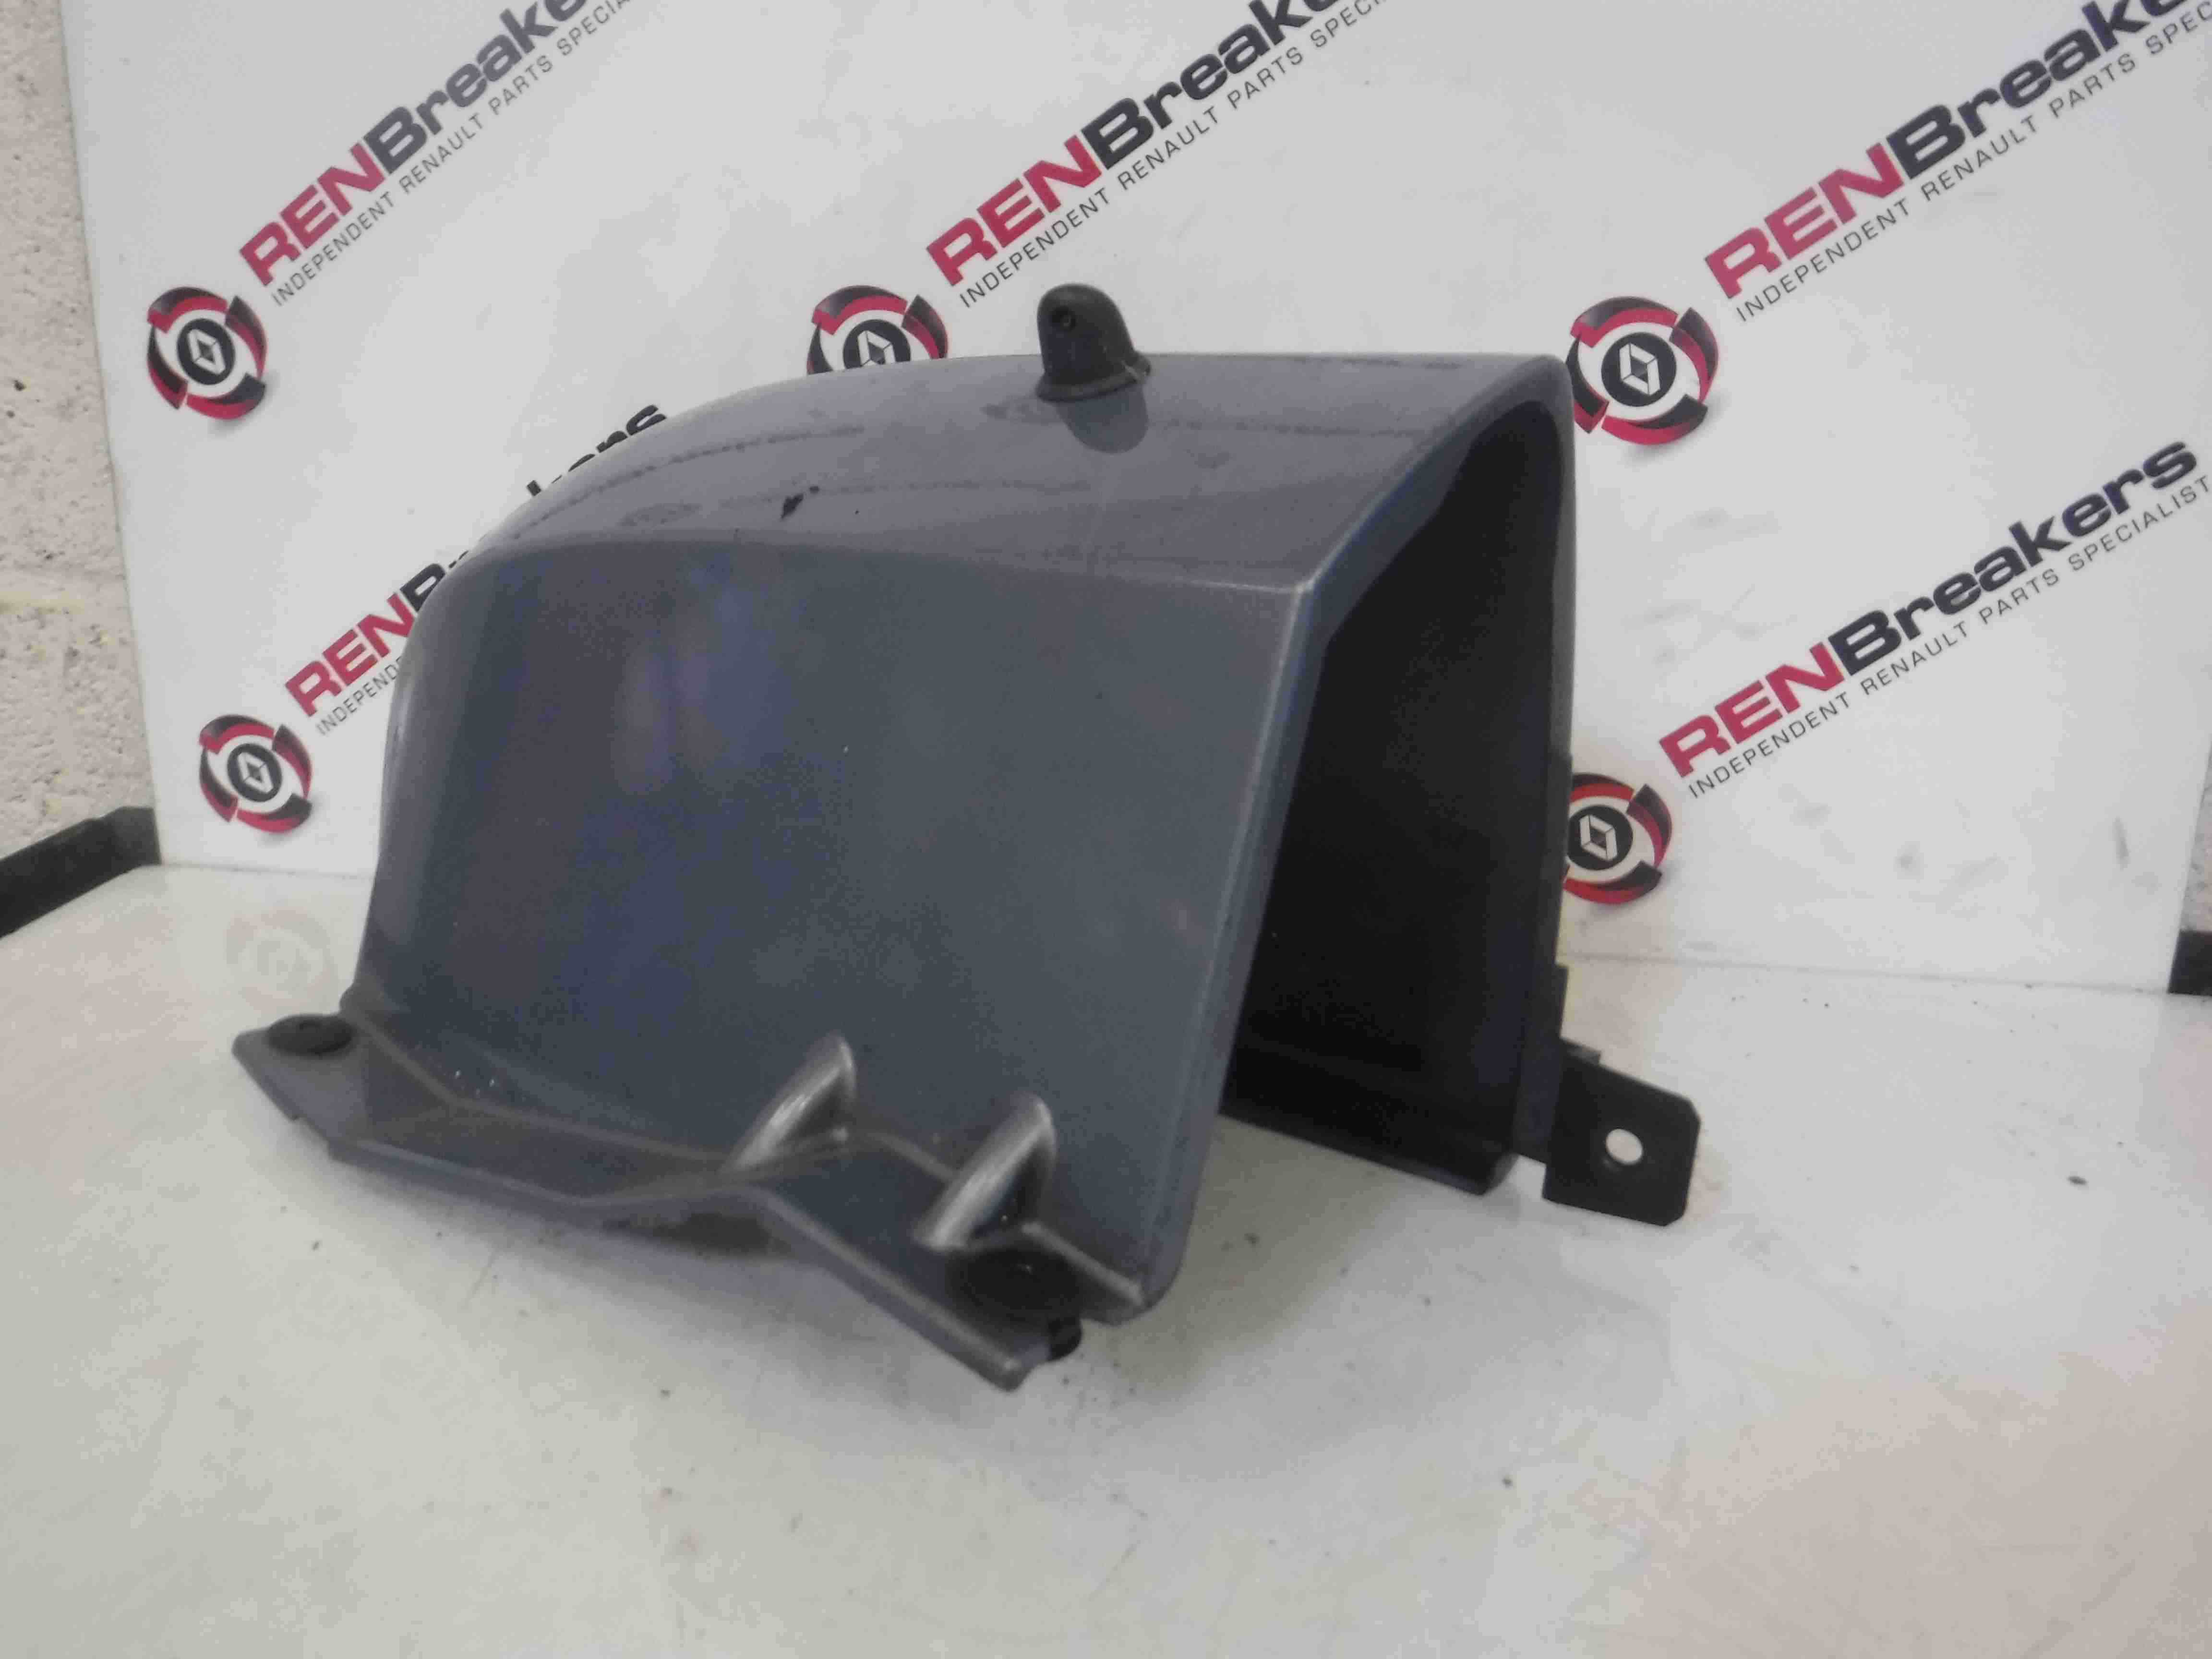 Renault Trafic 2006-2014 Drivers OSR Rear Top Moulding Purple TED47 With Jet